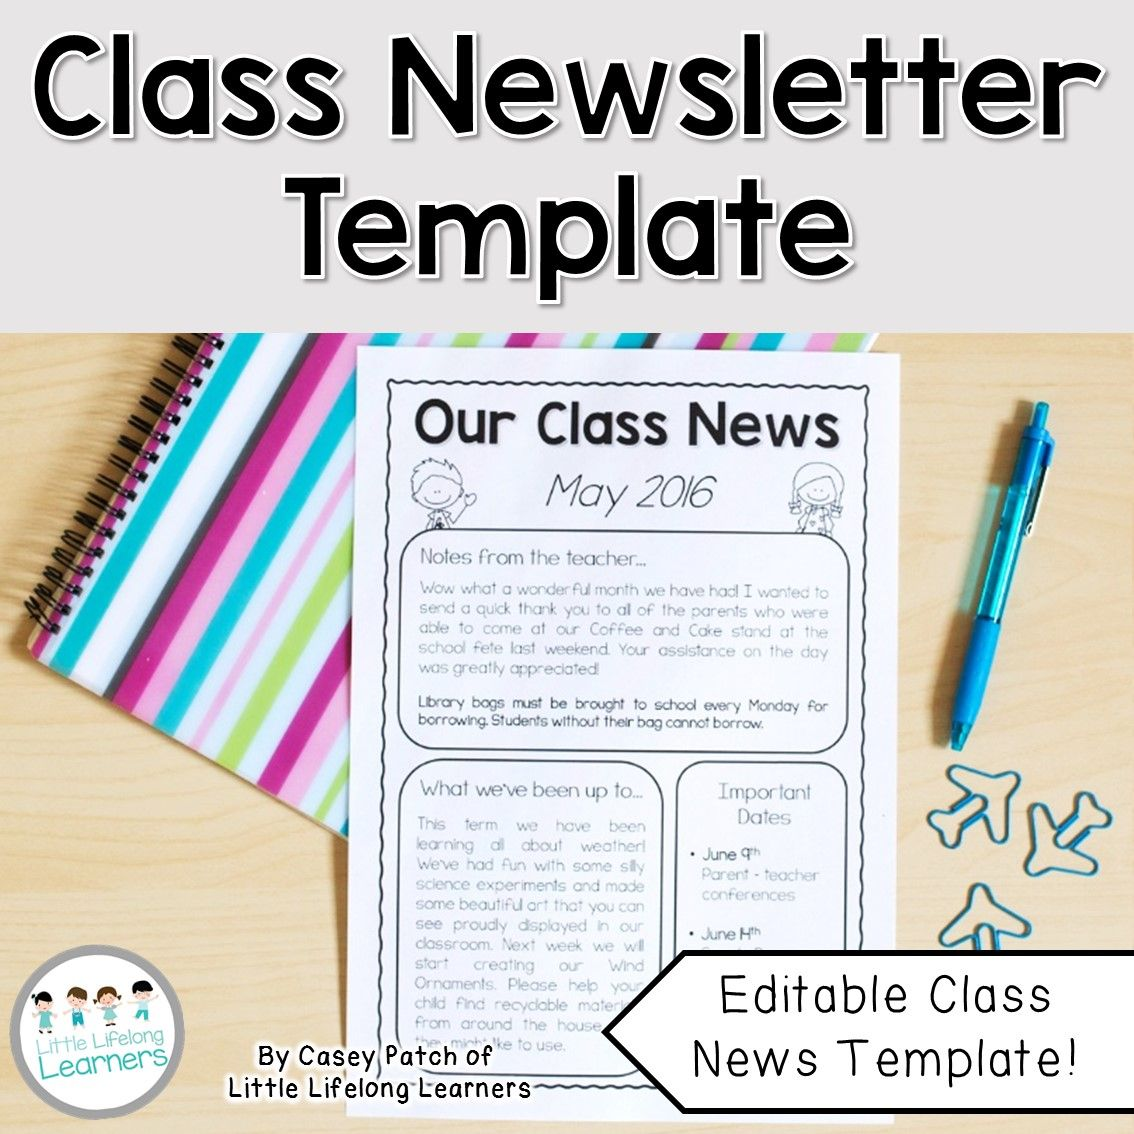 build positive relationships with the parents in your classroom with this fun printable classroom newsletter template